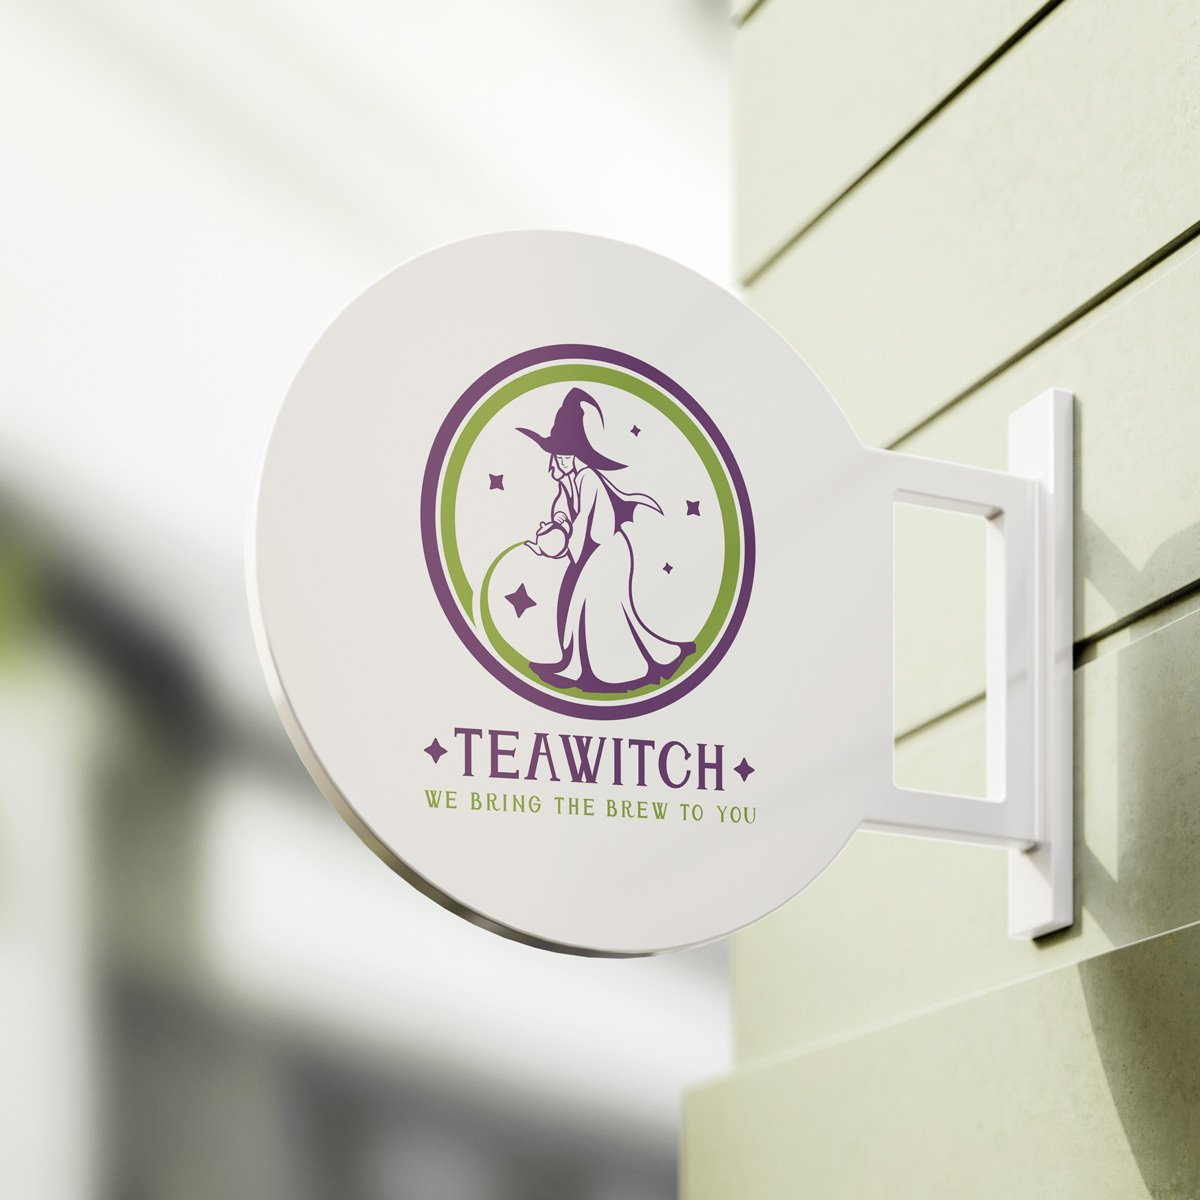 A logo design created by BrandSwan for a local high tea catering company: a witch pouring a cup of tea